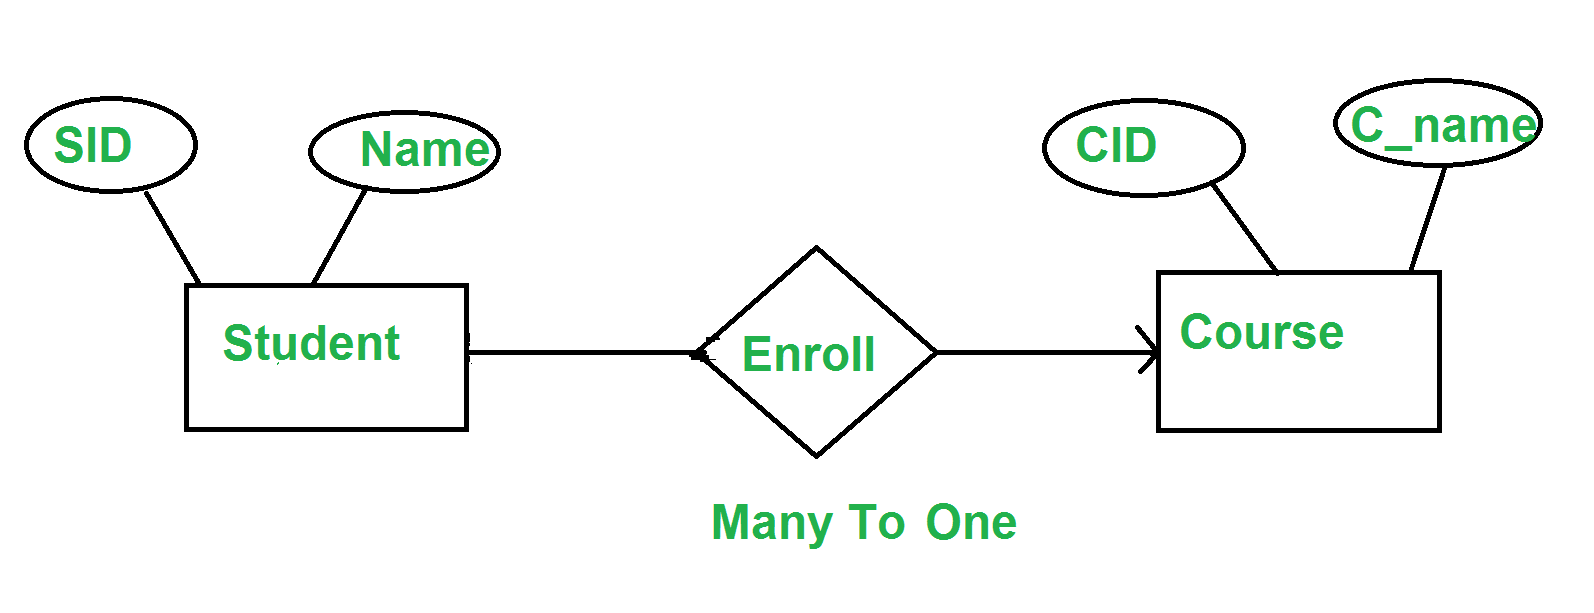 Minimization Of Er Diagrams - Geeksforgeeks